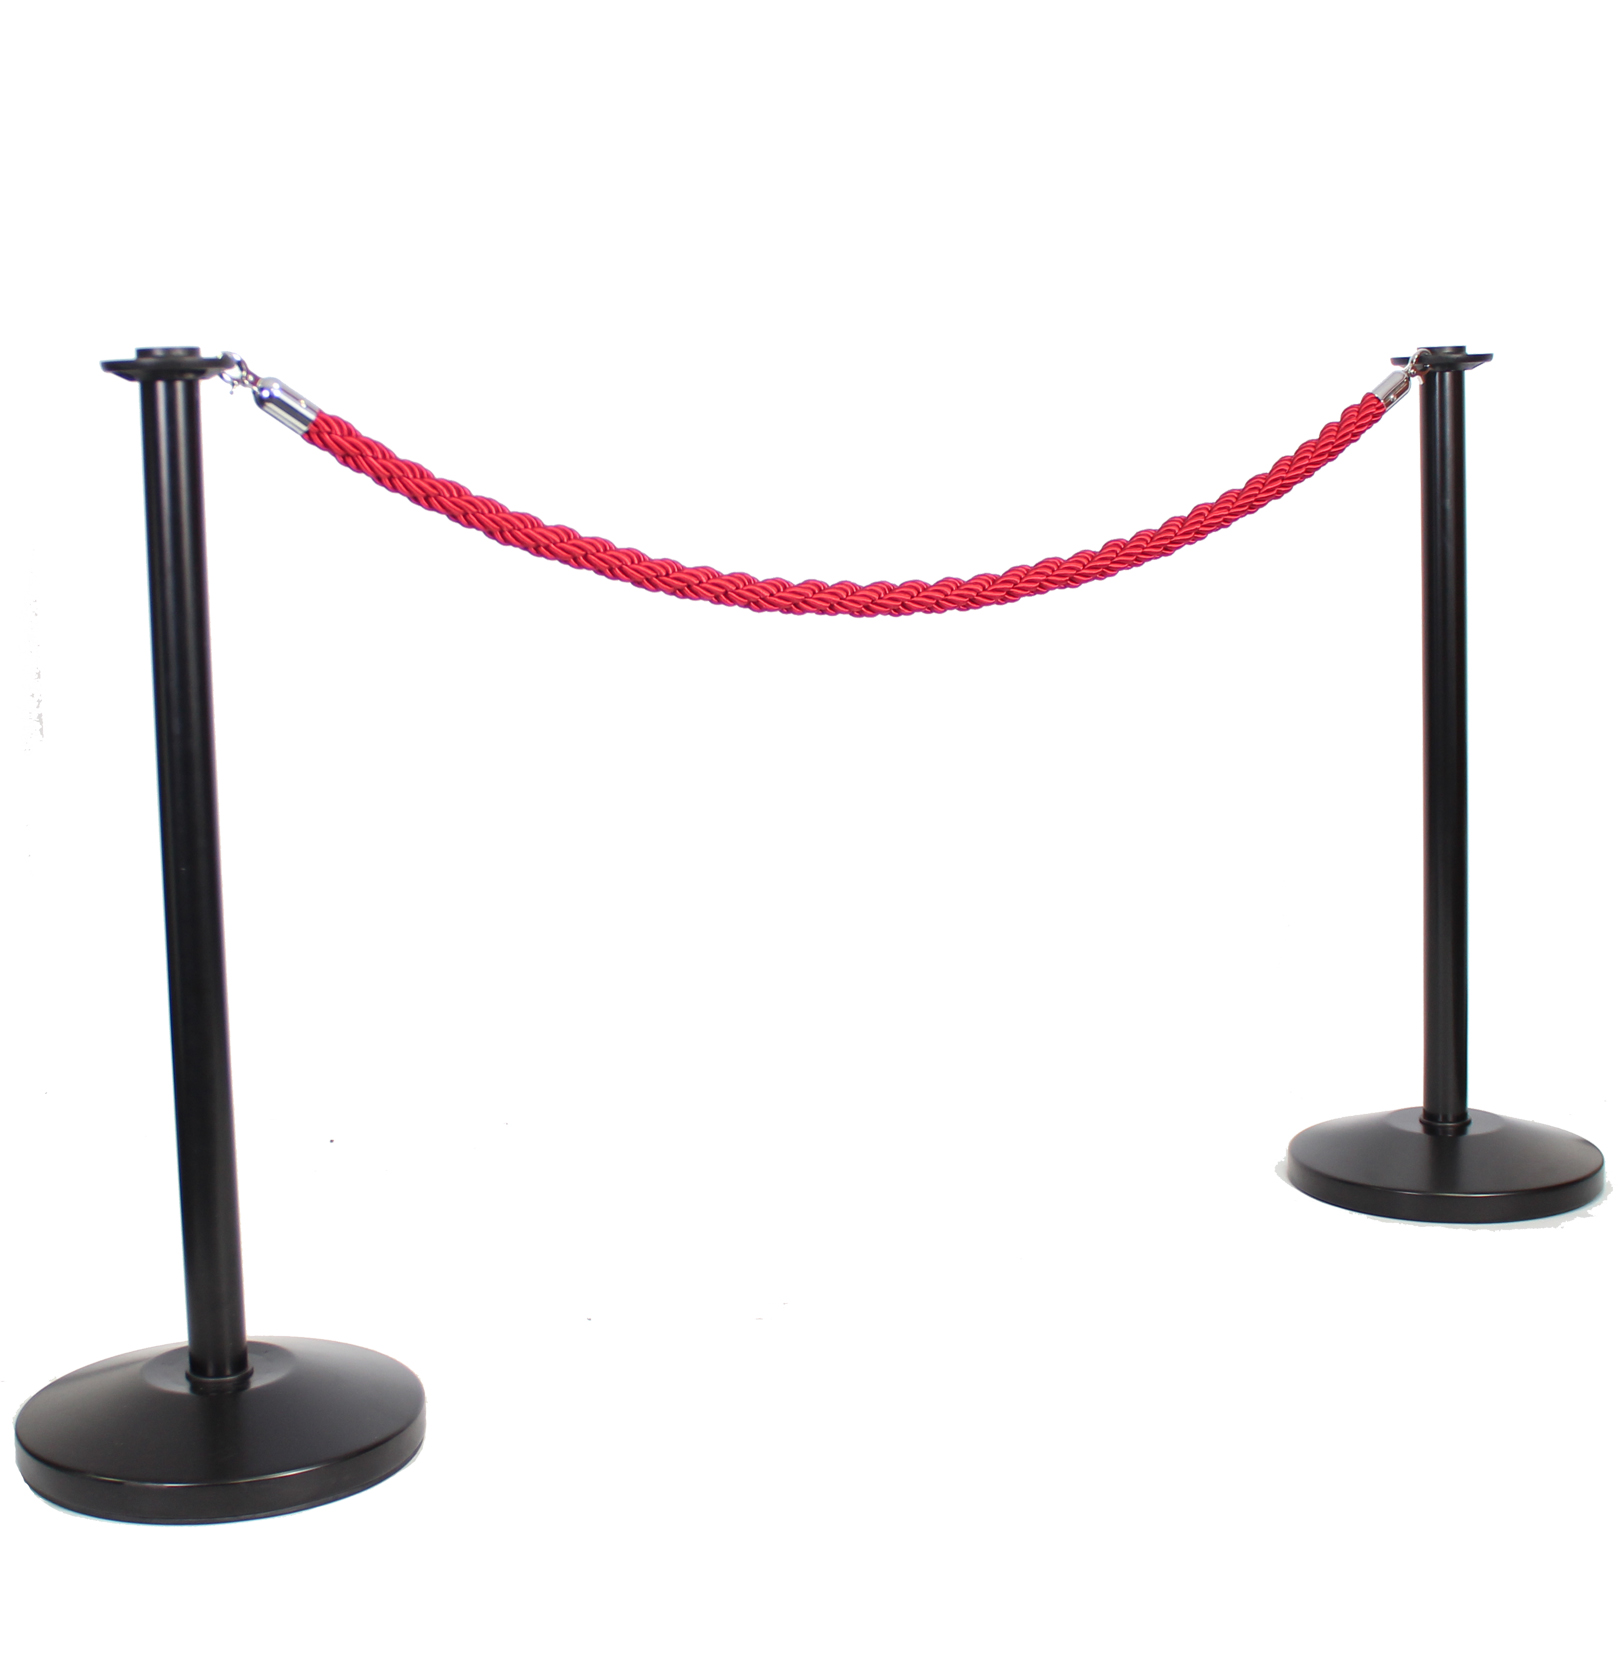 Adfresco Cafe Barrier Black Pole and Red Rope